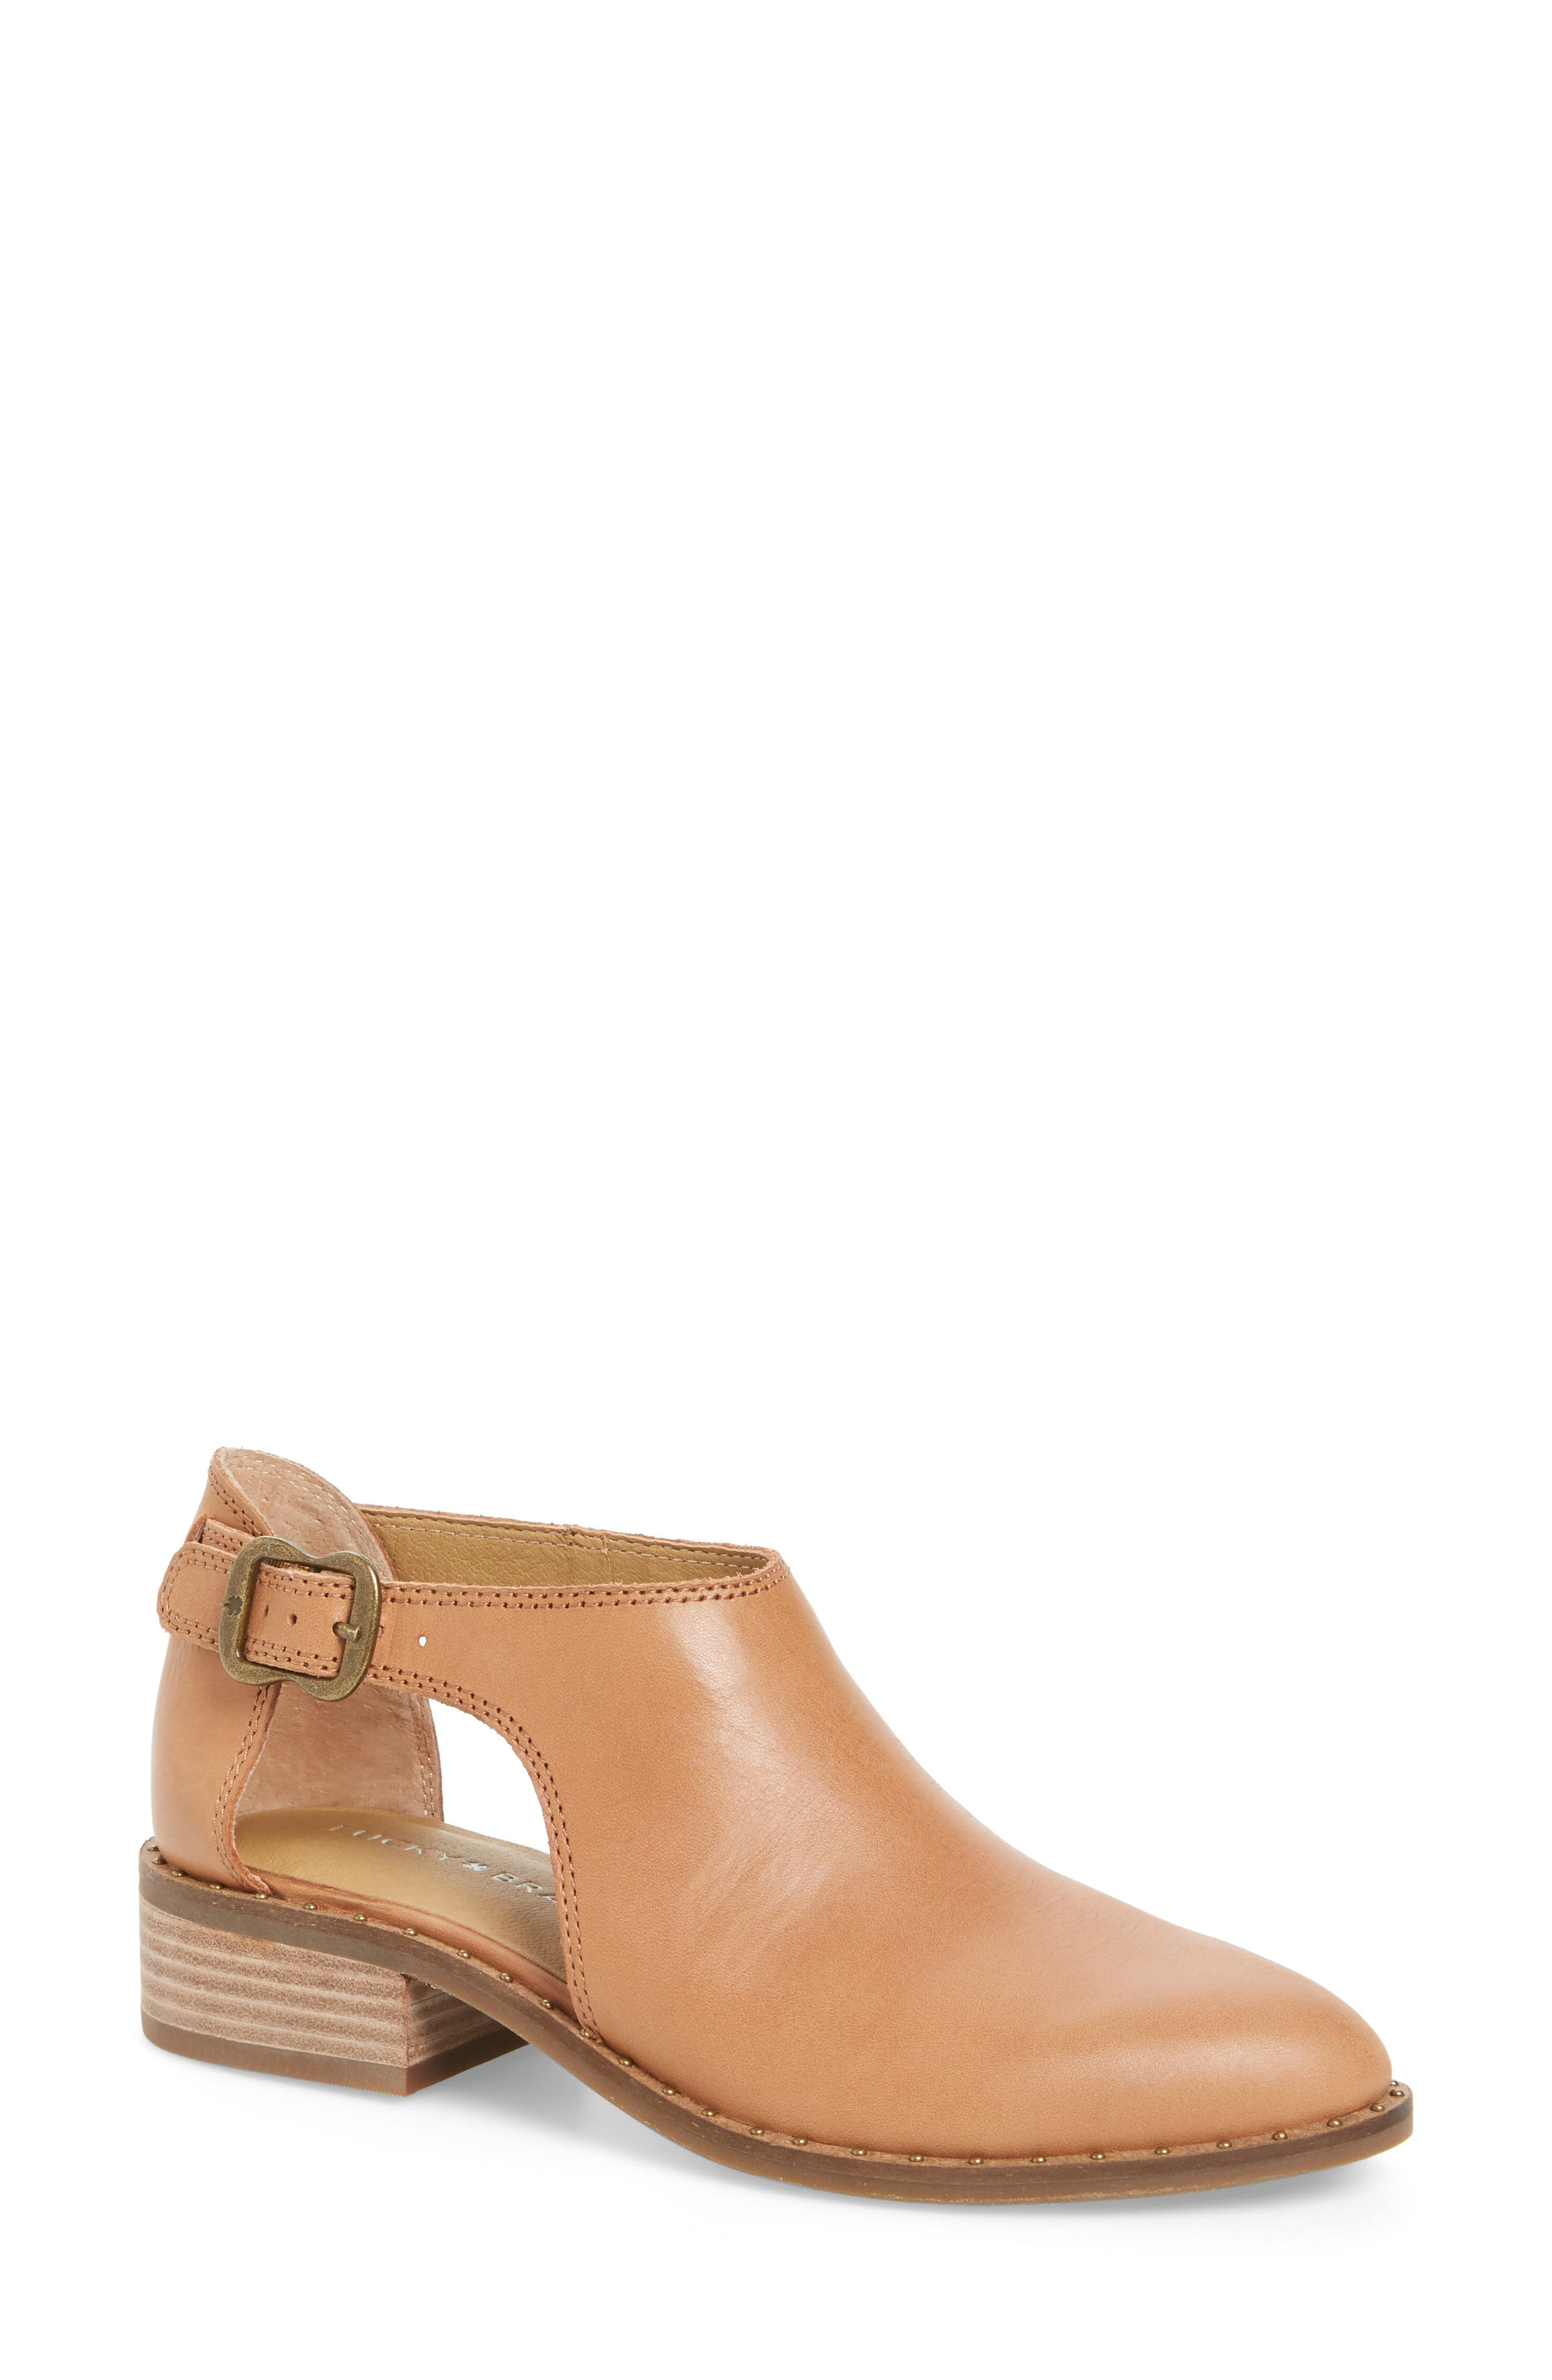 Alternate Image 1 Selected - Lucky Brand Giovanna Cutout Bootie (Women)